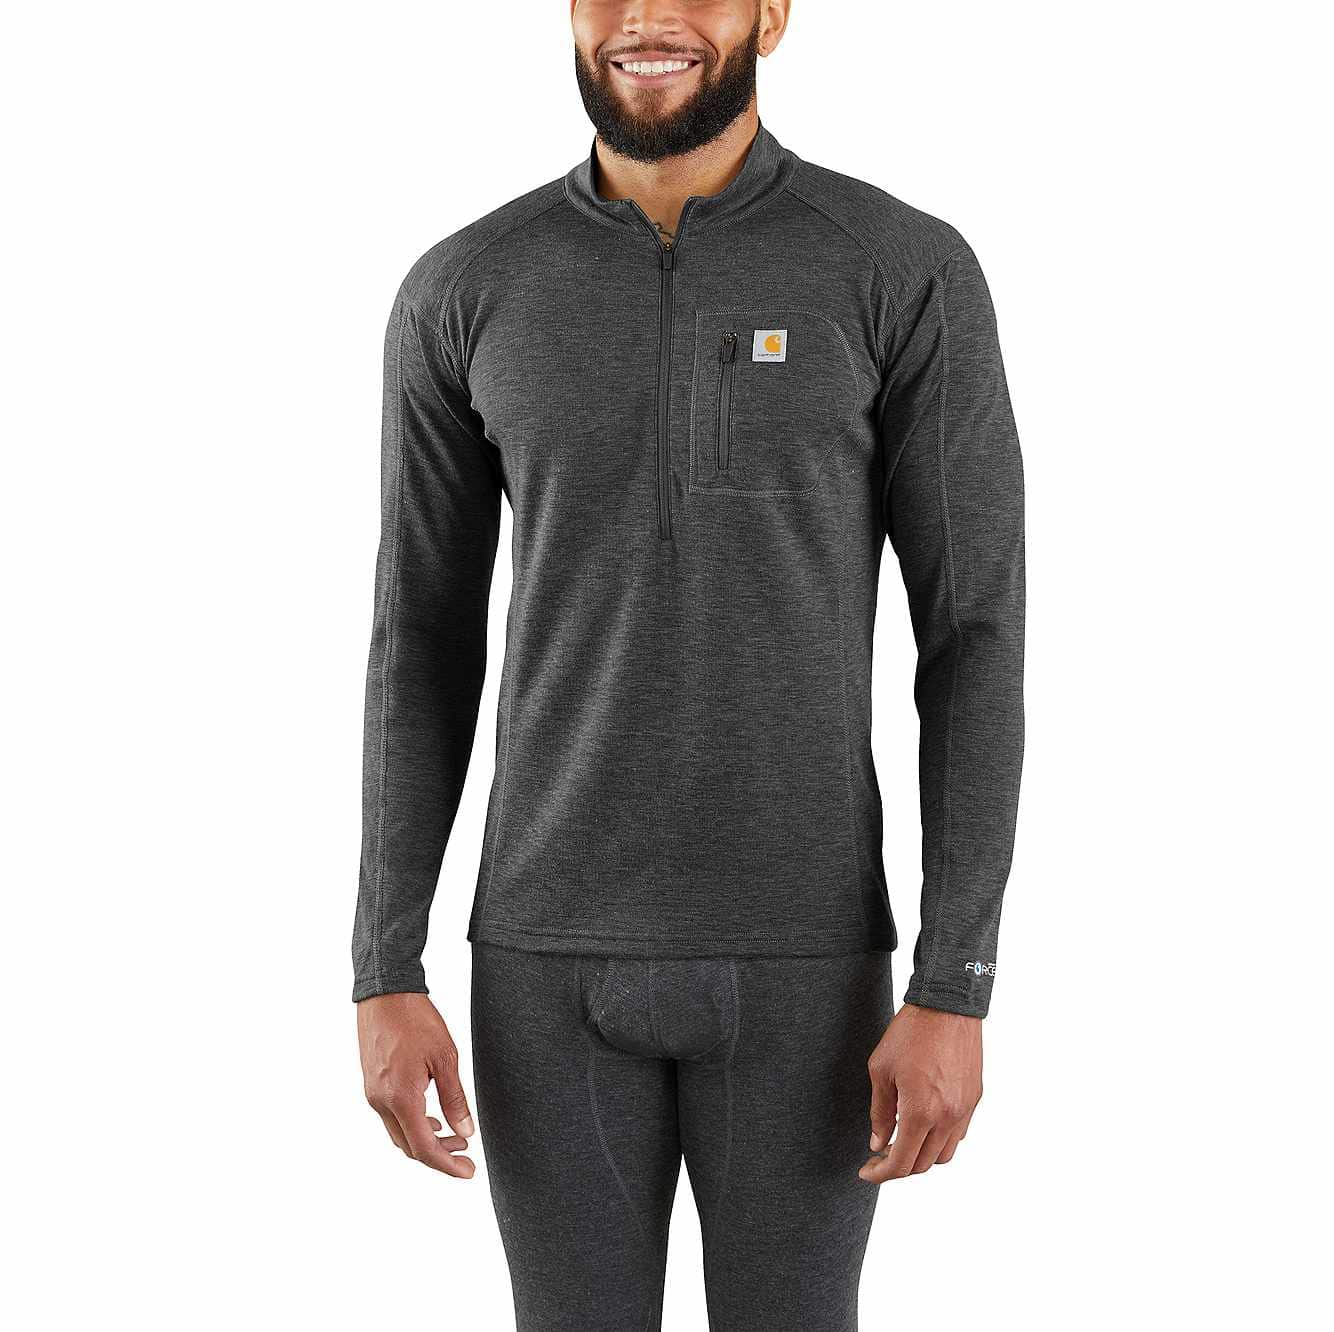 Picture of Base Force® Heavyweight Poly-Wool Quarter-Zip in Black